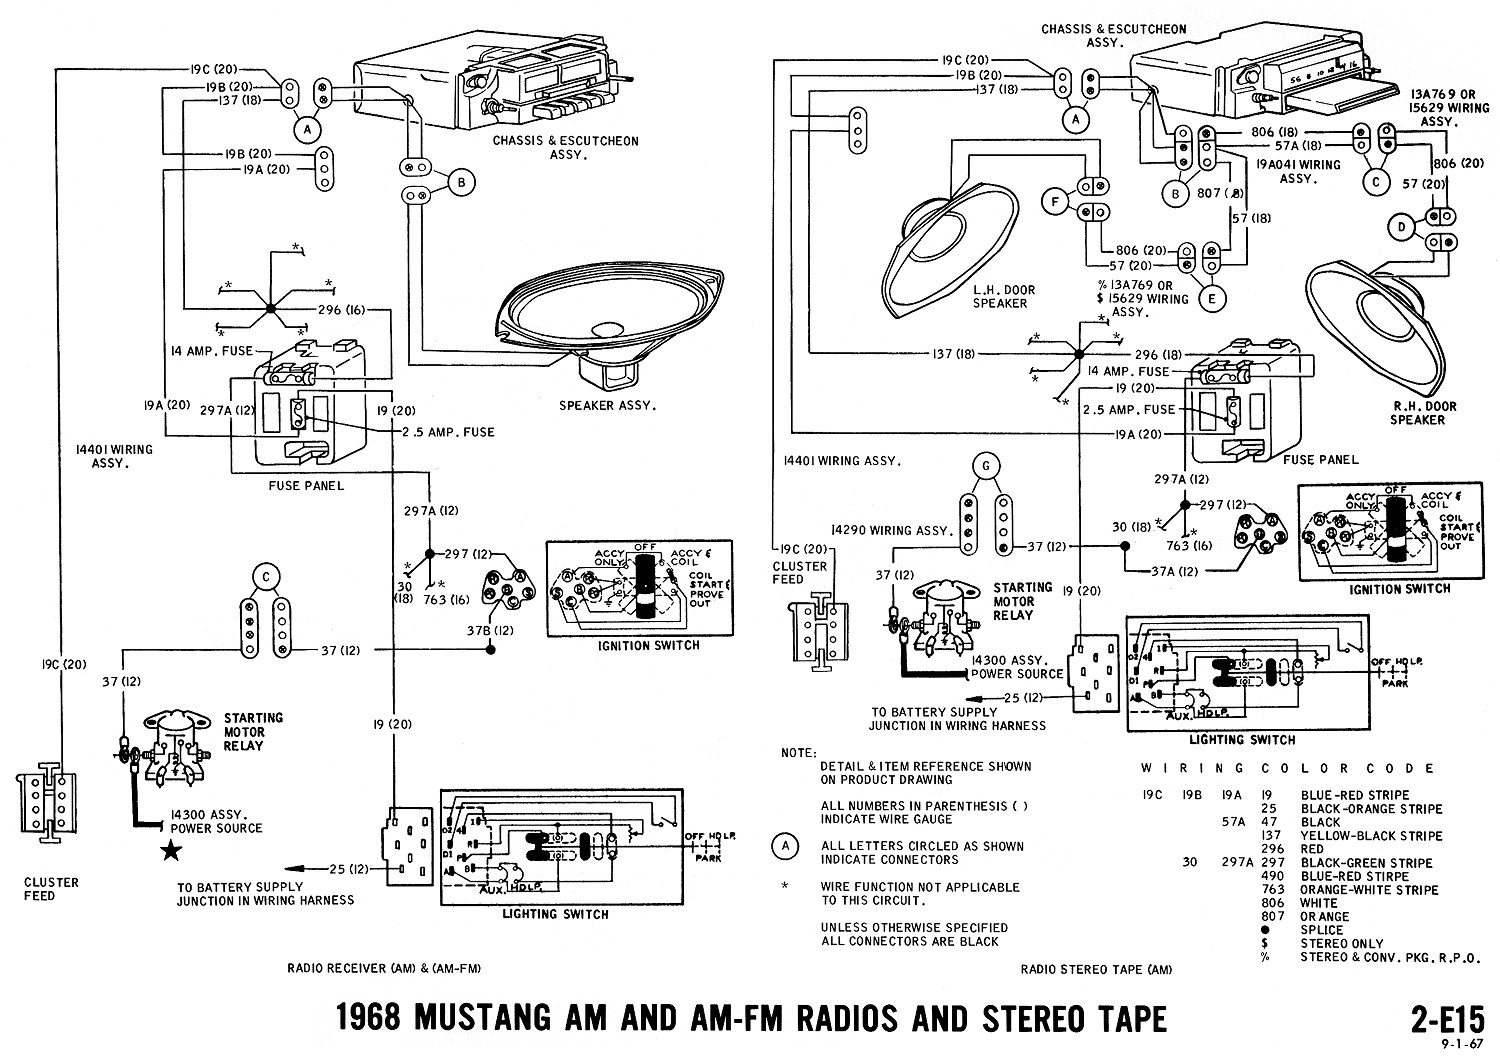 1968 mustang wiring diagrams evolving software 68 mustang wiring diagram pdf 68 mustang wiring diagram [ 1500 x 1060 Pixel ]